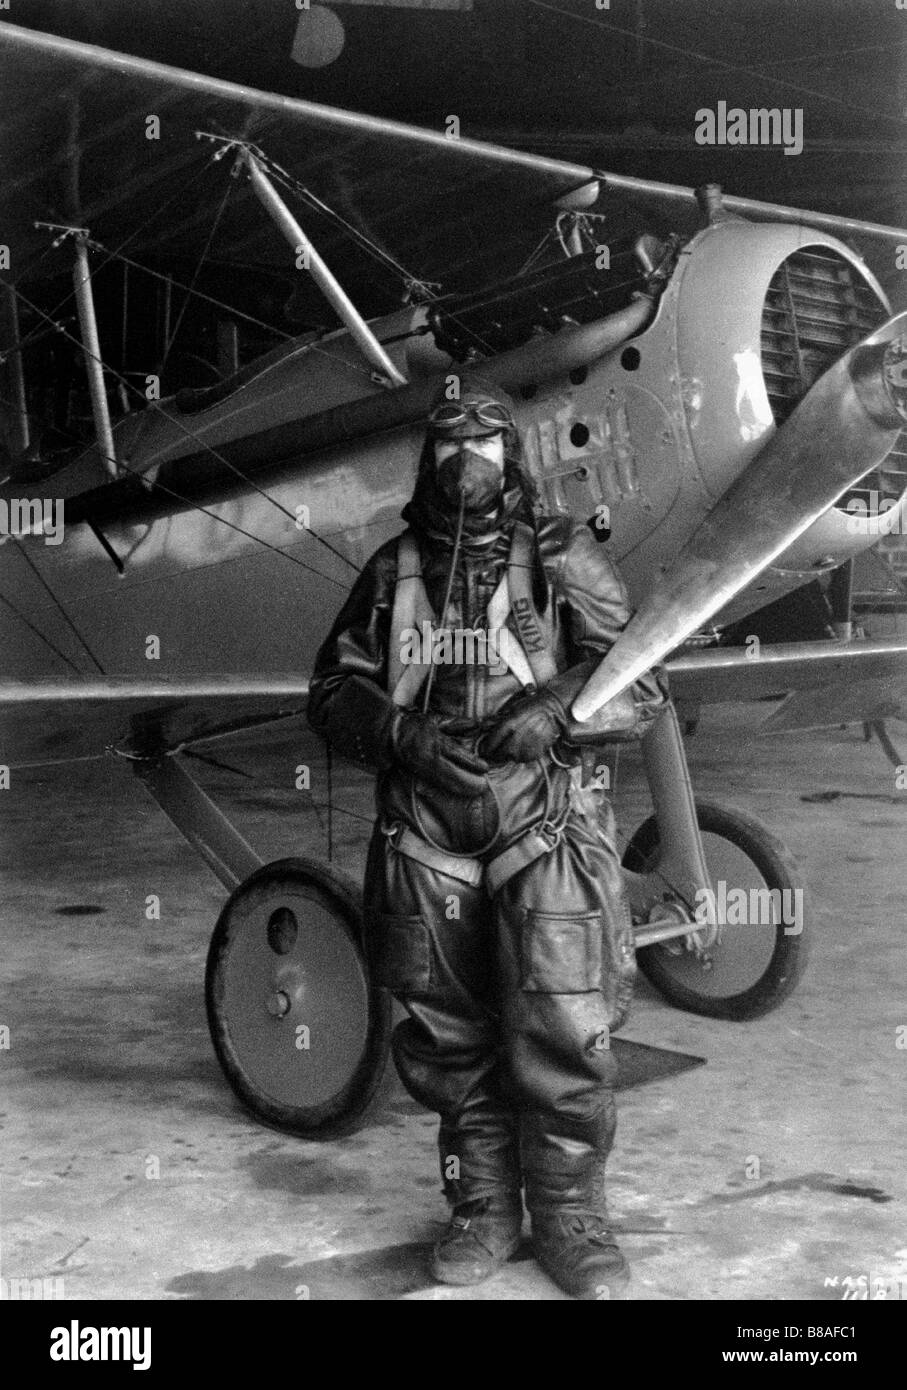 Pilot Paul King and the Vought VE-7 on Oct. 17, 1925 - Stock Image